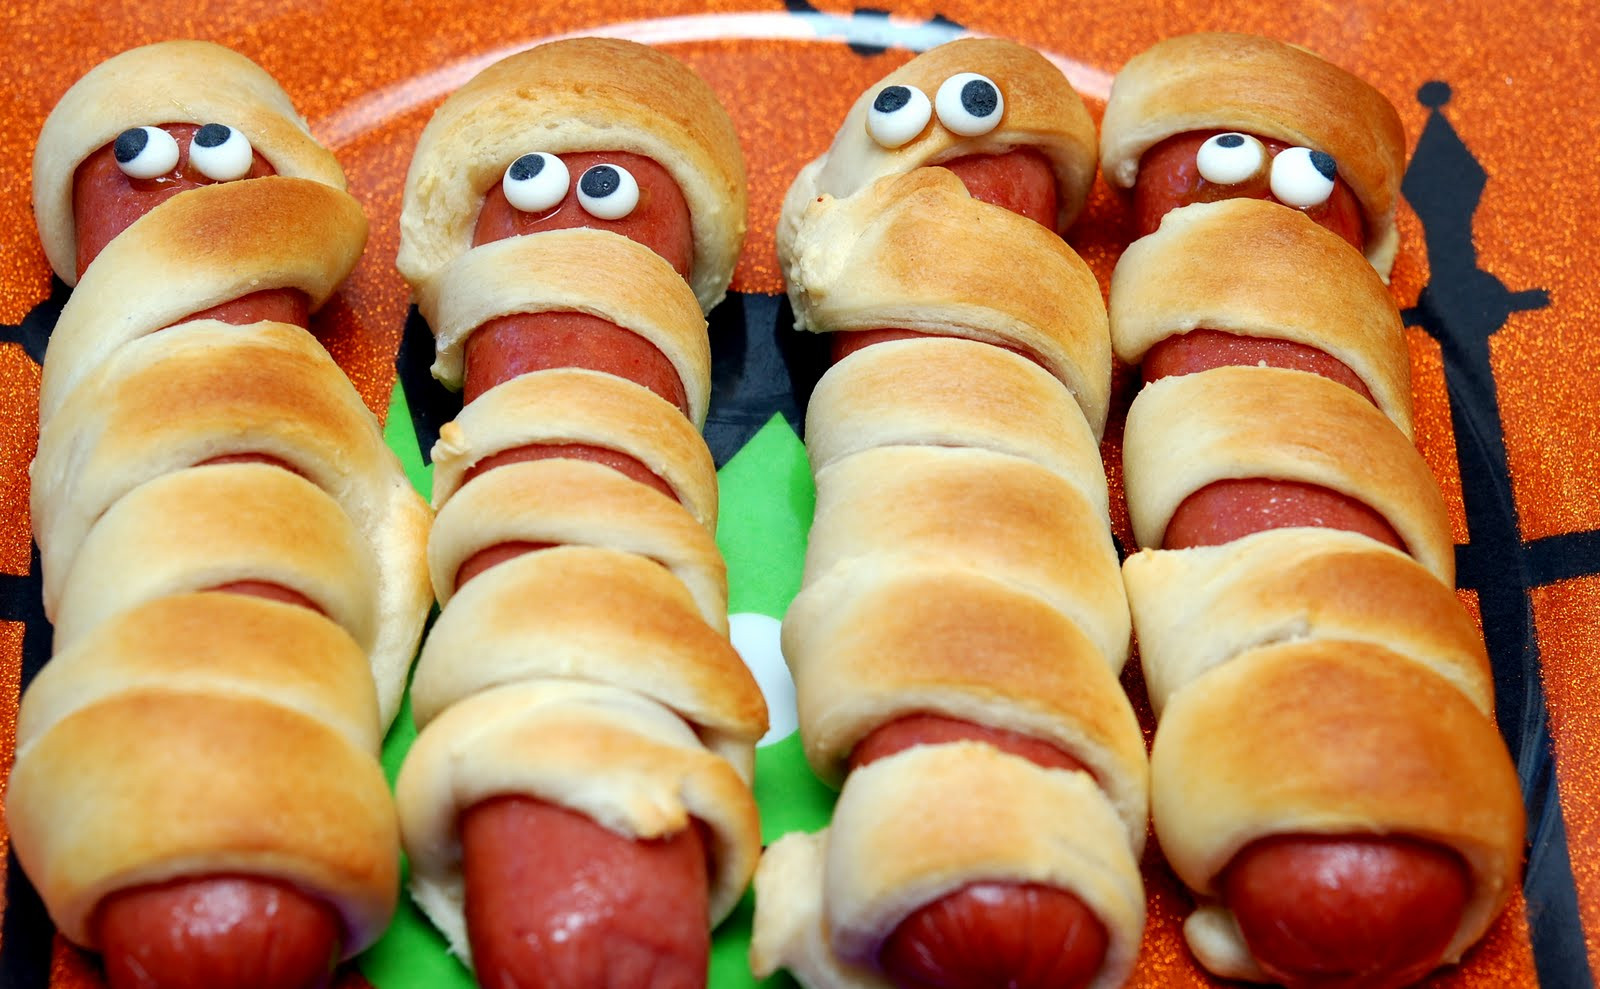 Halloween Mummy Hot Dogs  MUMMY HOT DOGS FOR DINNER Hugs and Cookies XOXO